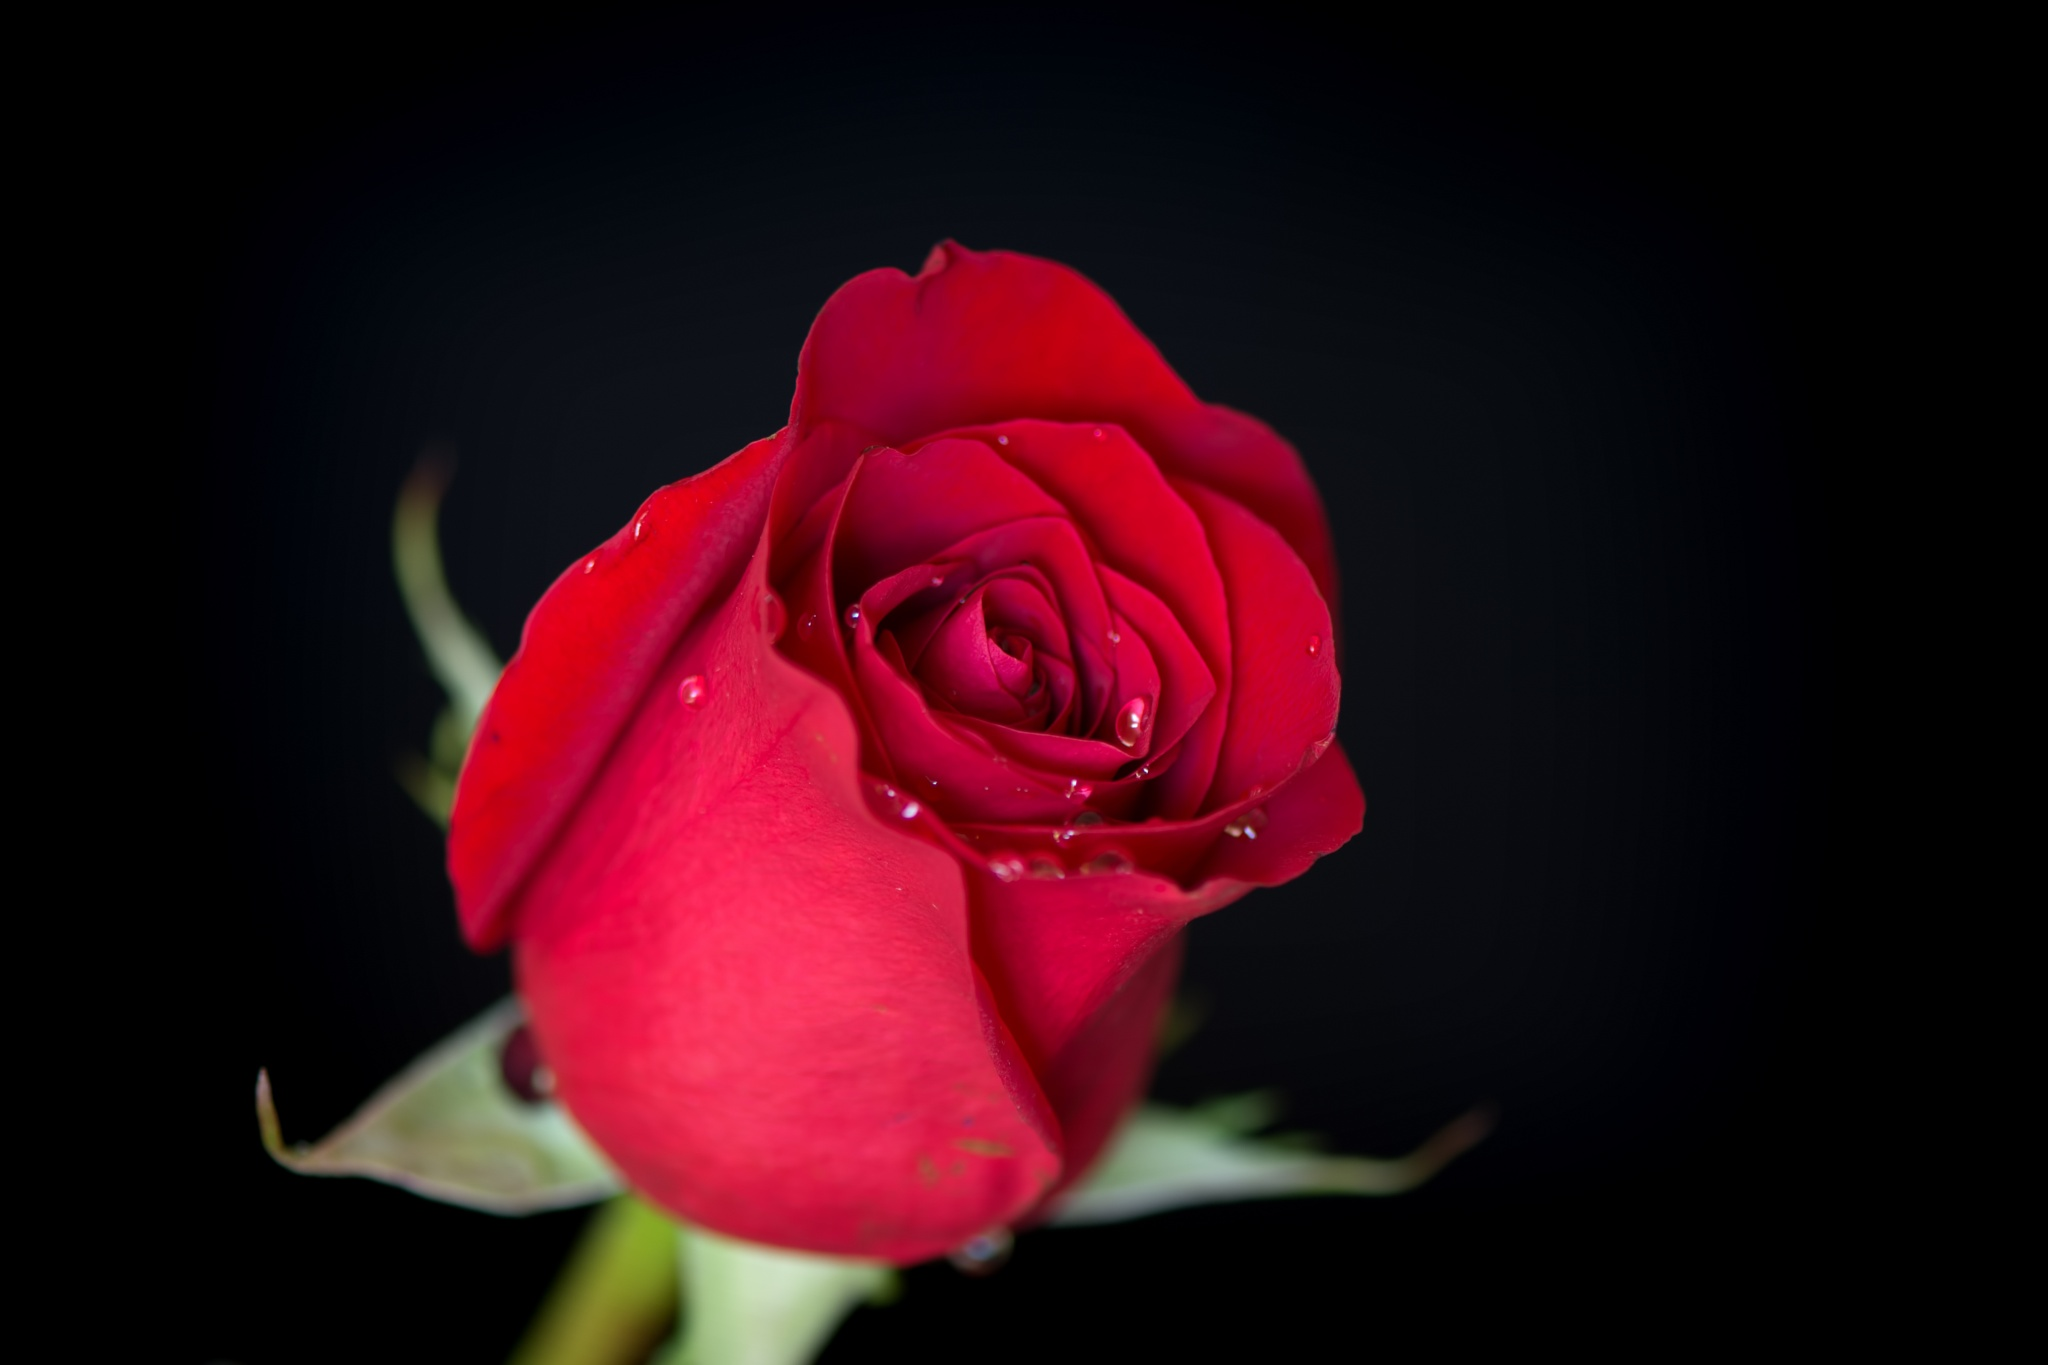 Single Rose with Drops 1123 by ThomasJerger